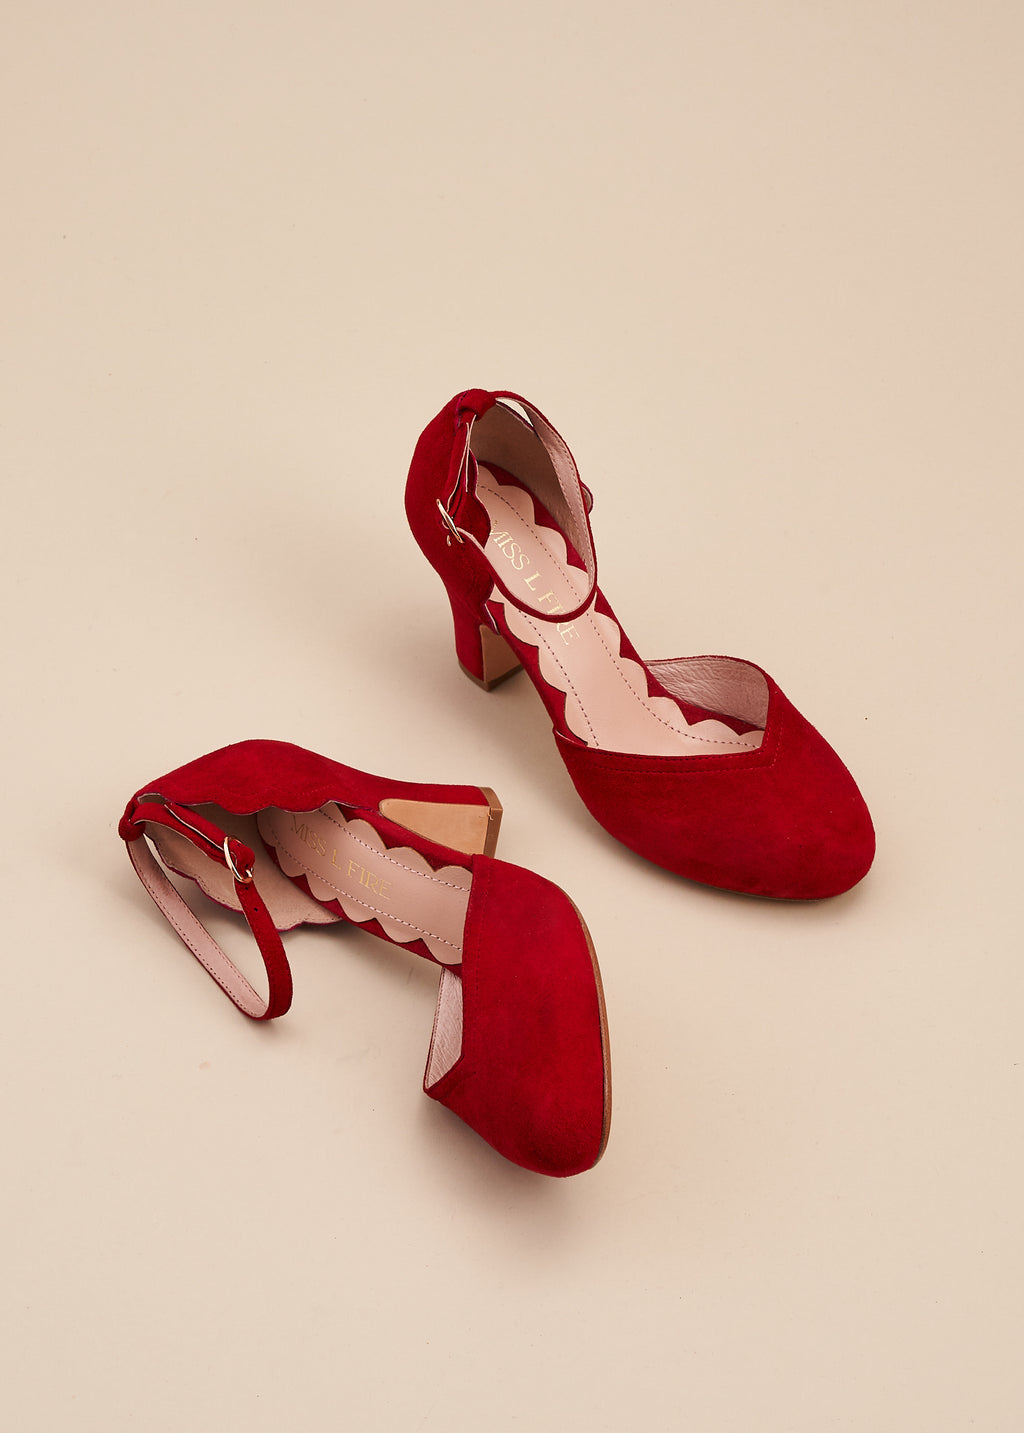 Layla, by Miss L Fire,  in soft ruby red suede is our go-to, every day, vintage inspired two part bar shoe with 'v' shaped topline, adjustable ankle strap, 8cm curved heel and cute scalloped detail. Wear at home, or plan a future party. Either way, prepare to dance all night in this classic style.